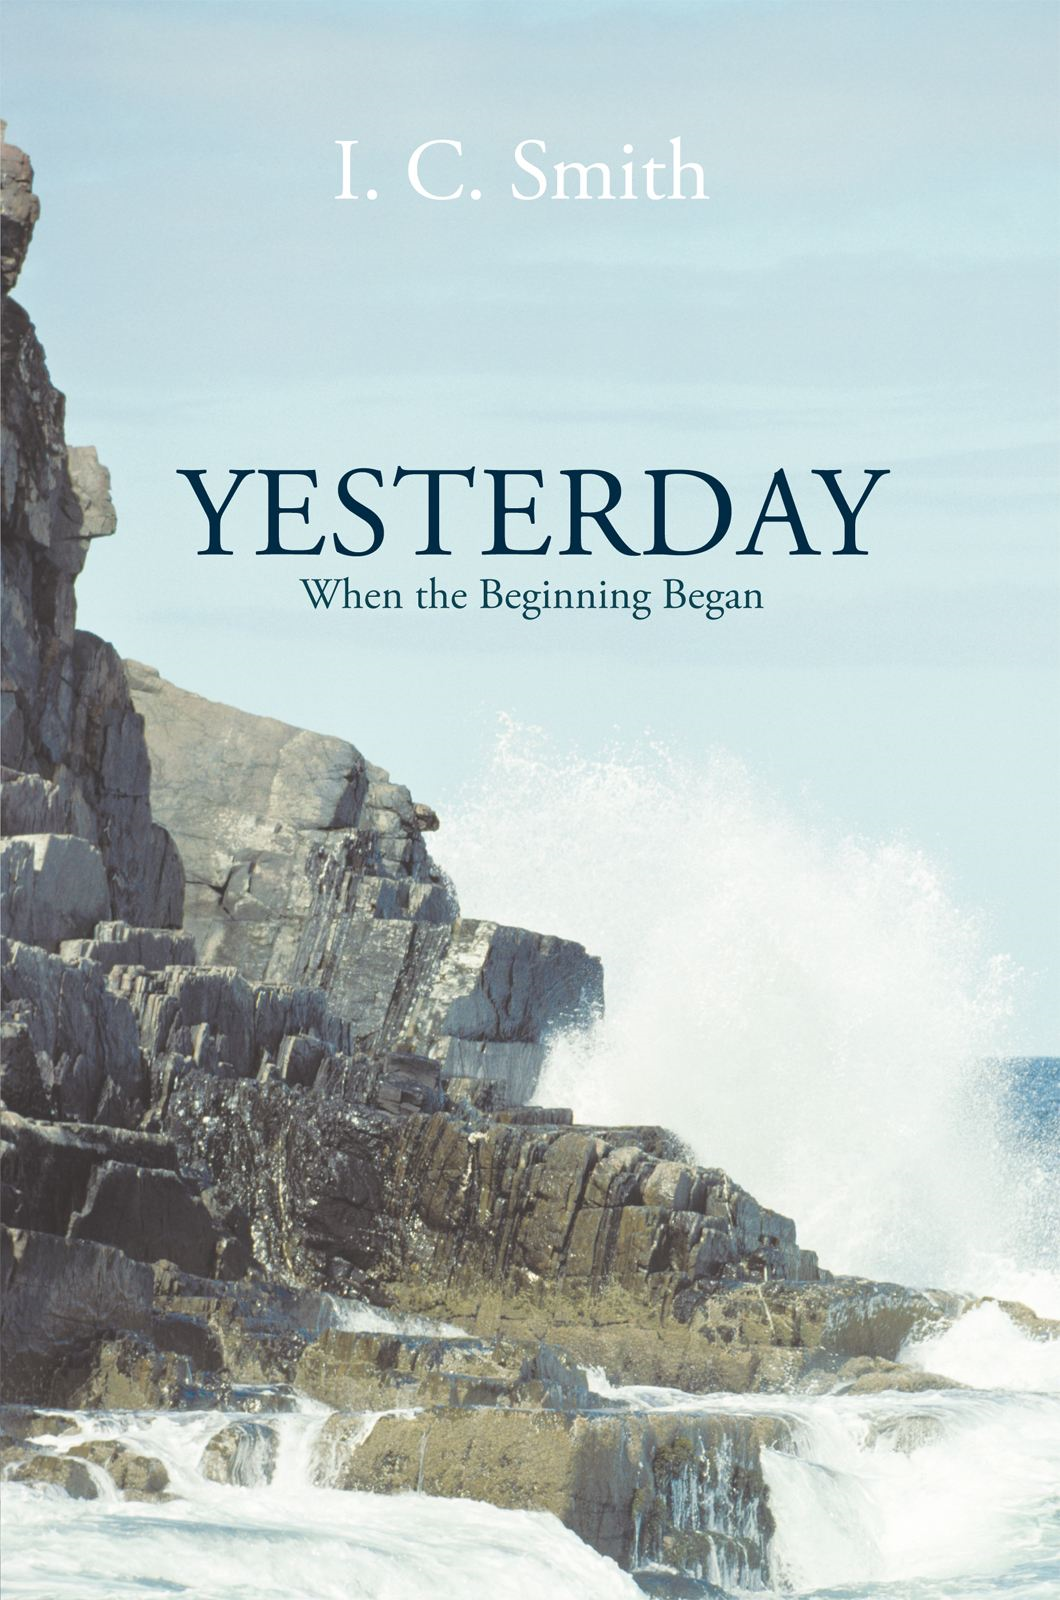 Yesterday By: I. C. Smith